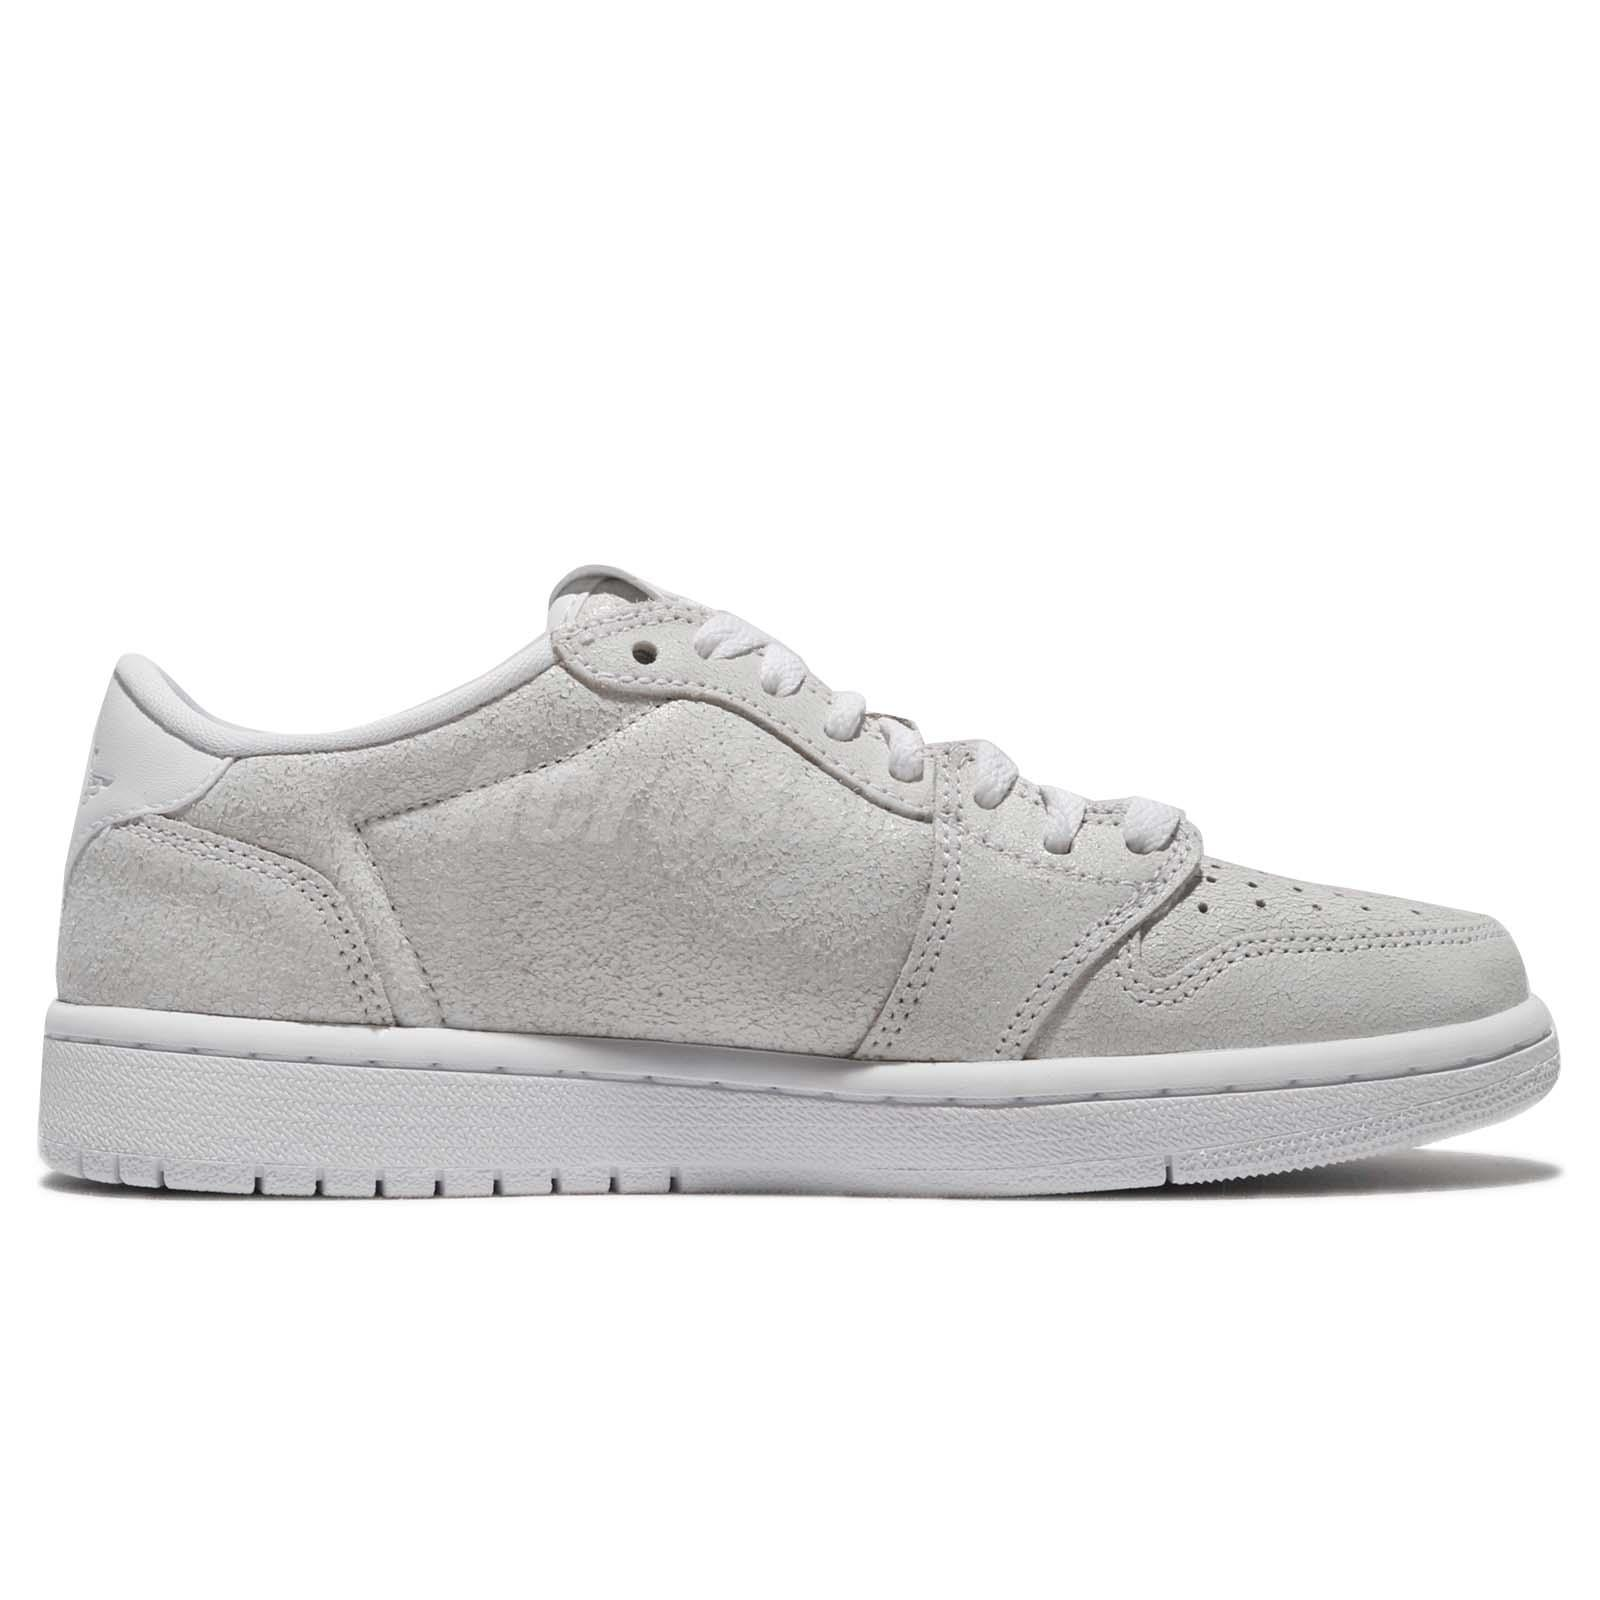 Nike Gray And Gold Sneakers For Women - Musée des impressionnismes ... 8788b639f2578